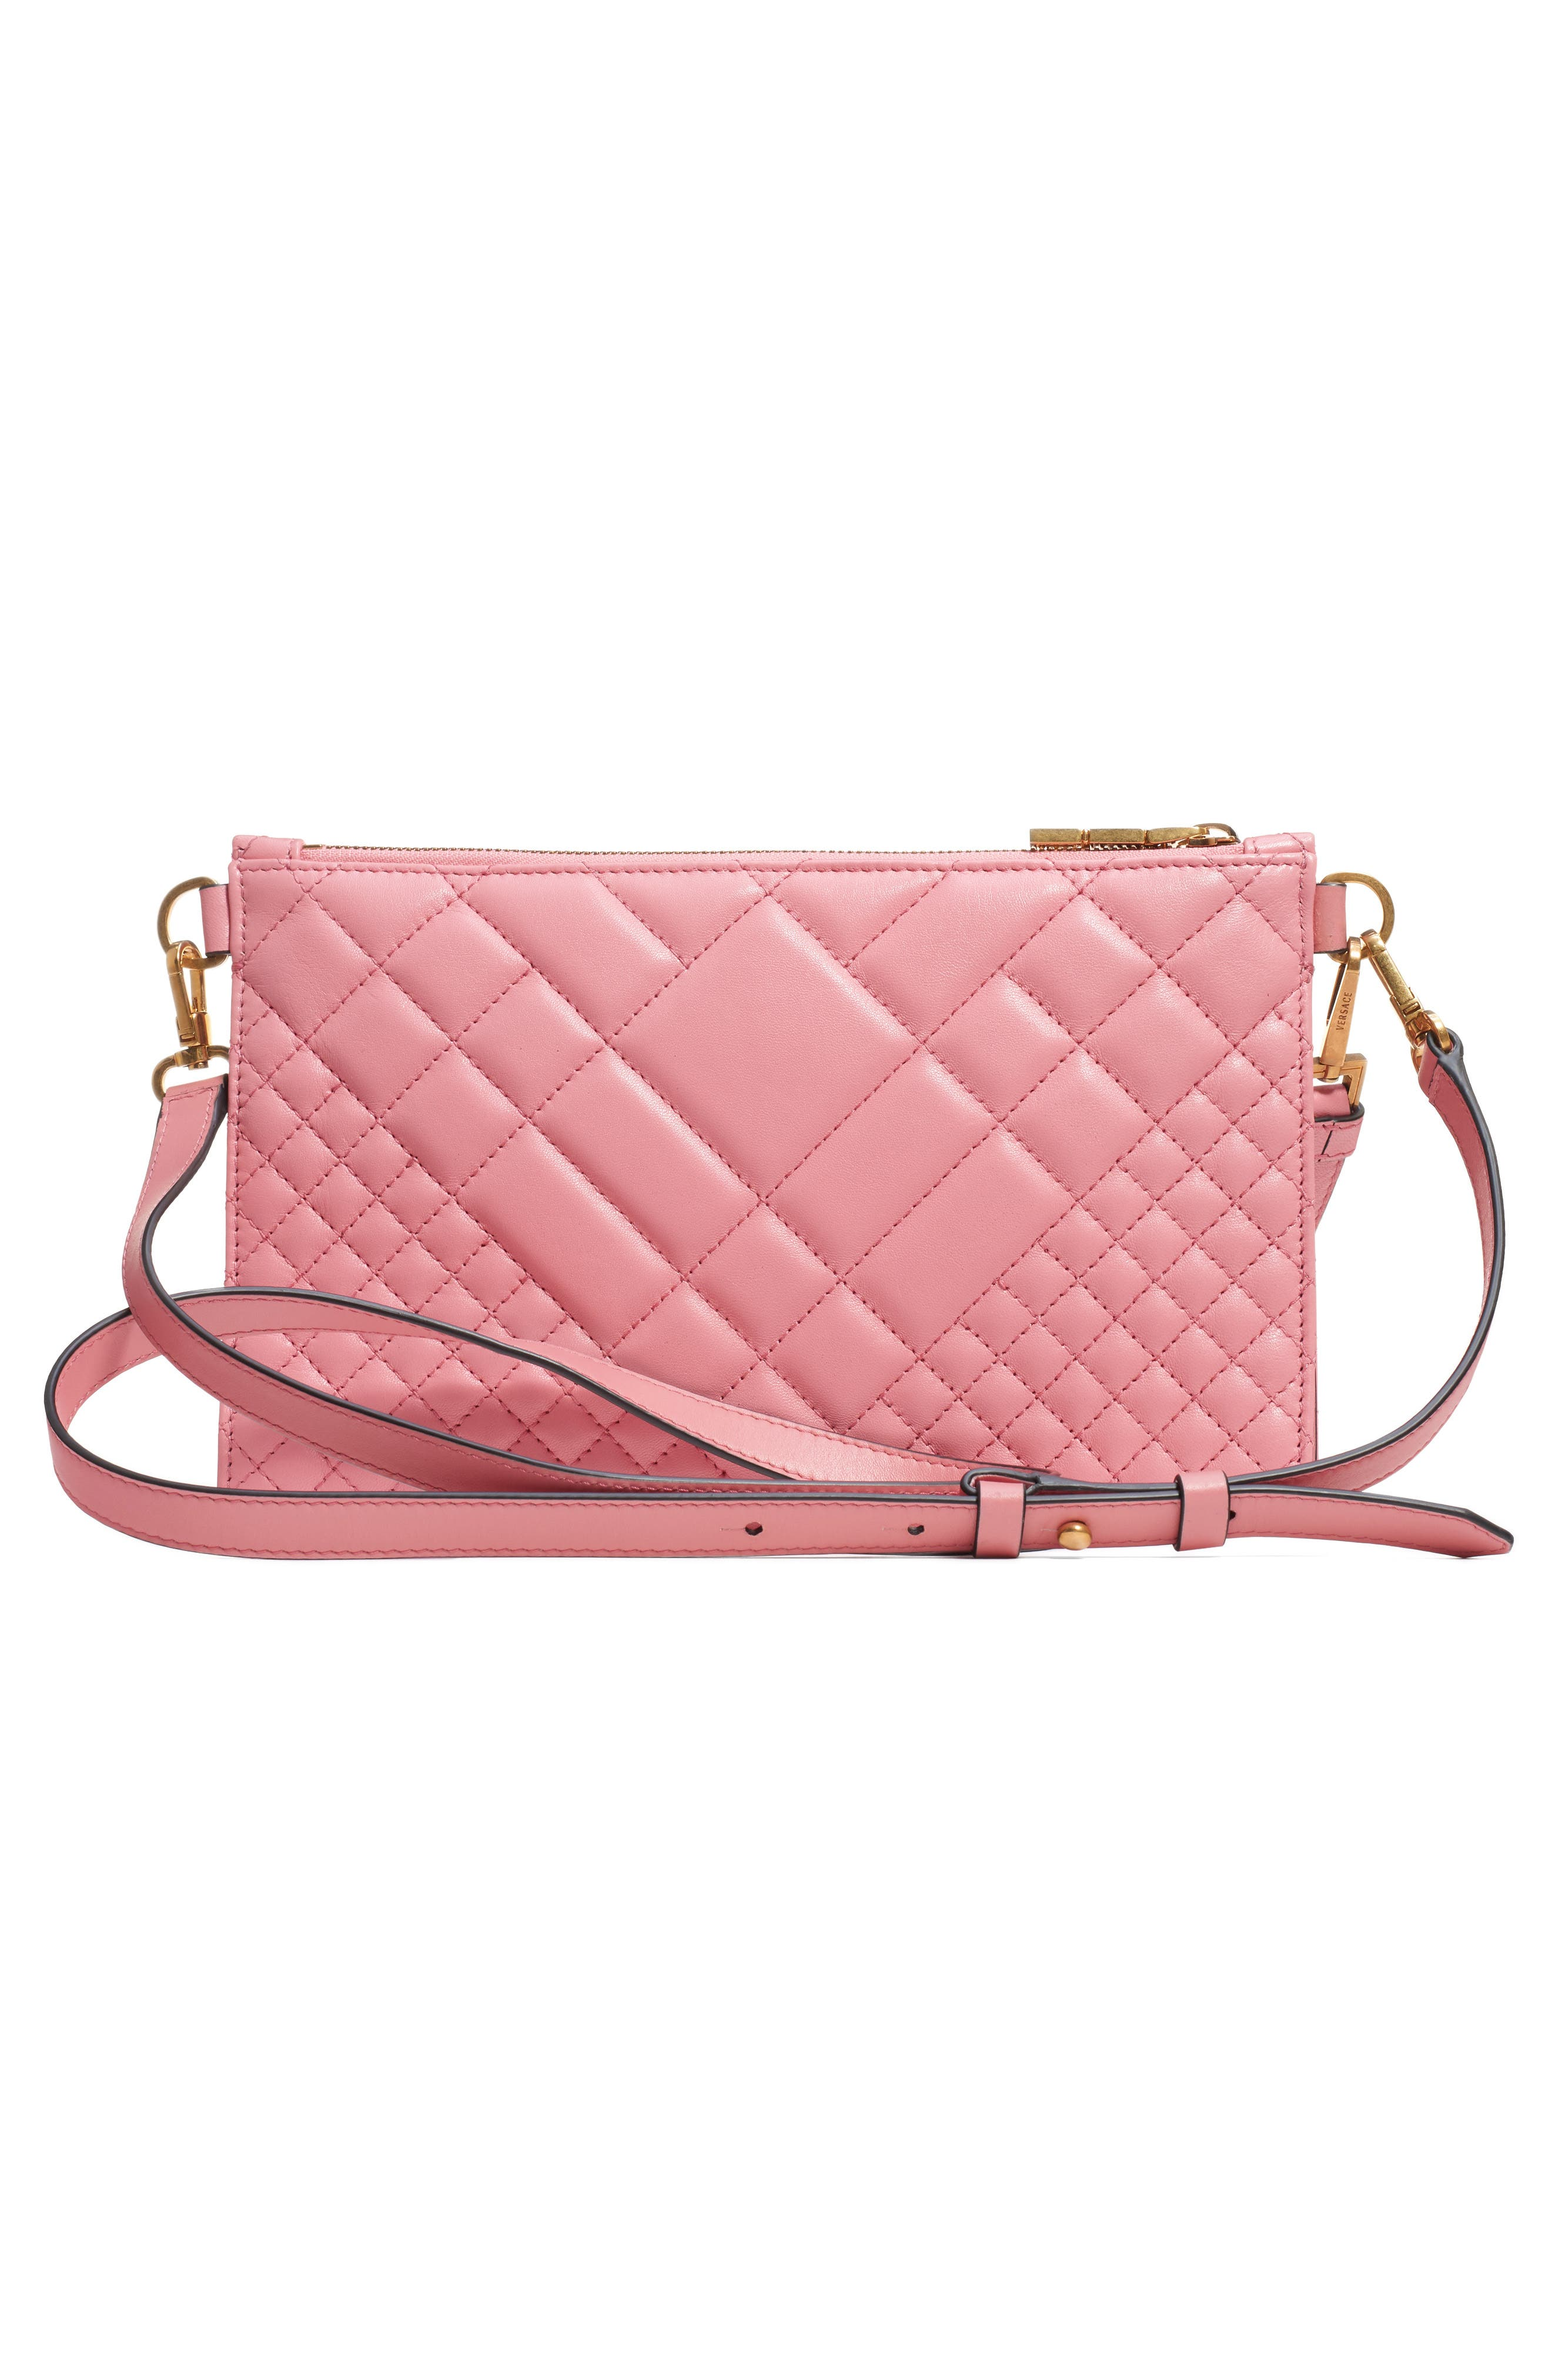 VERSACE, Tribute Icon Quilted Leather Pouch, Alternate thumbnail 3, color, SHELL PINK/ TRIBUTE GOLD